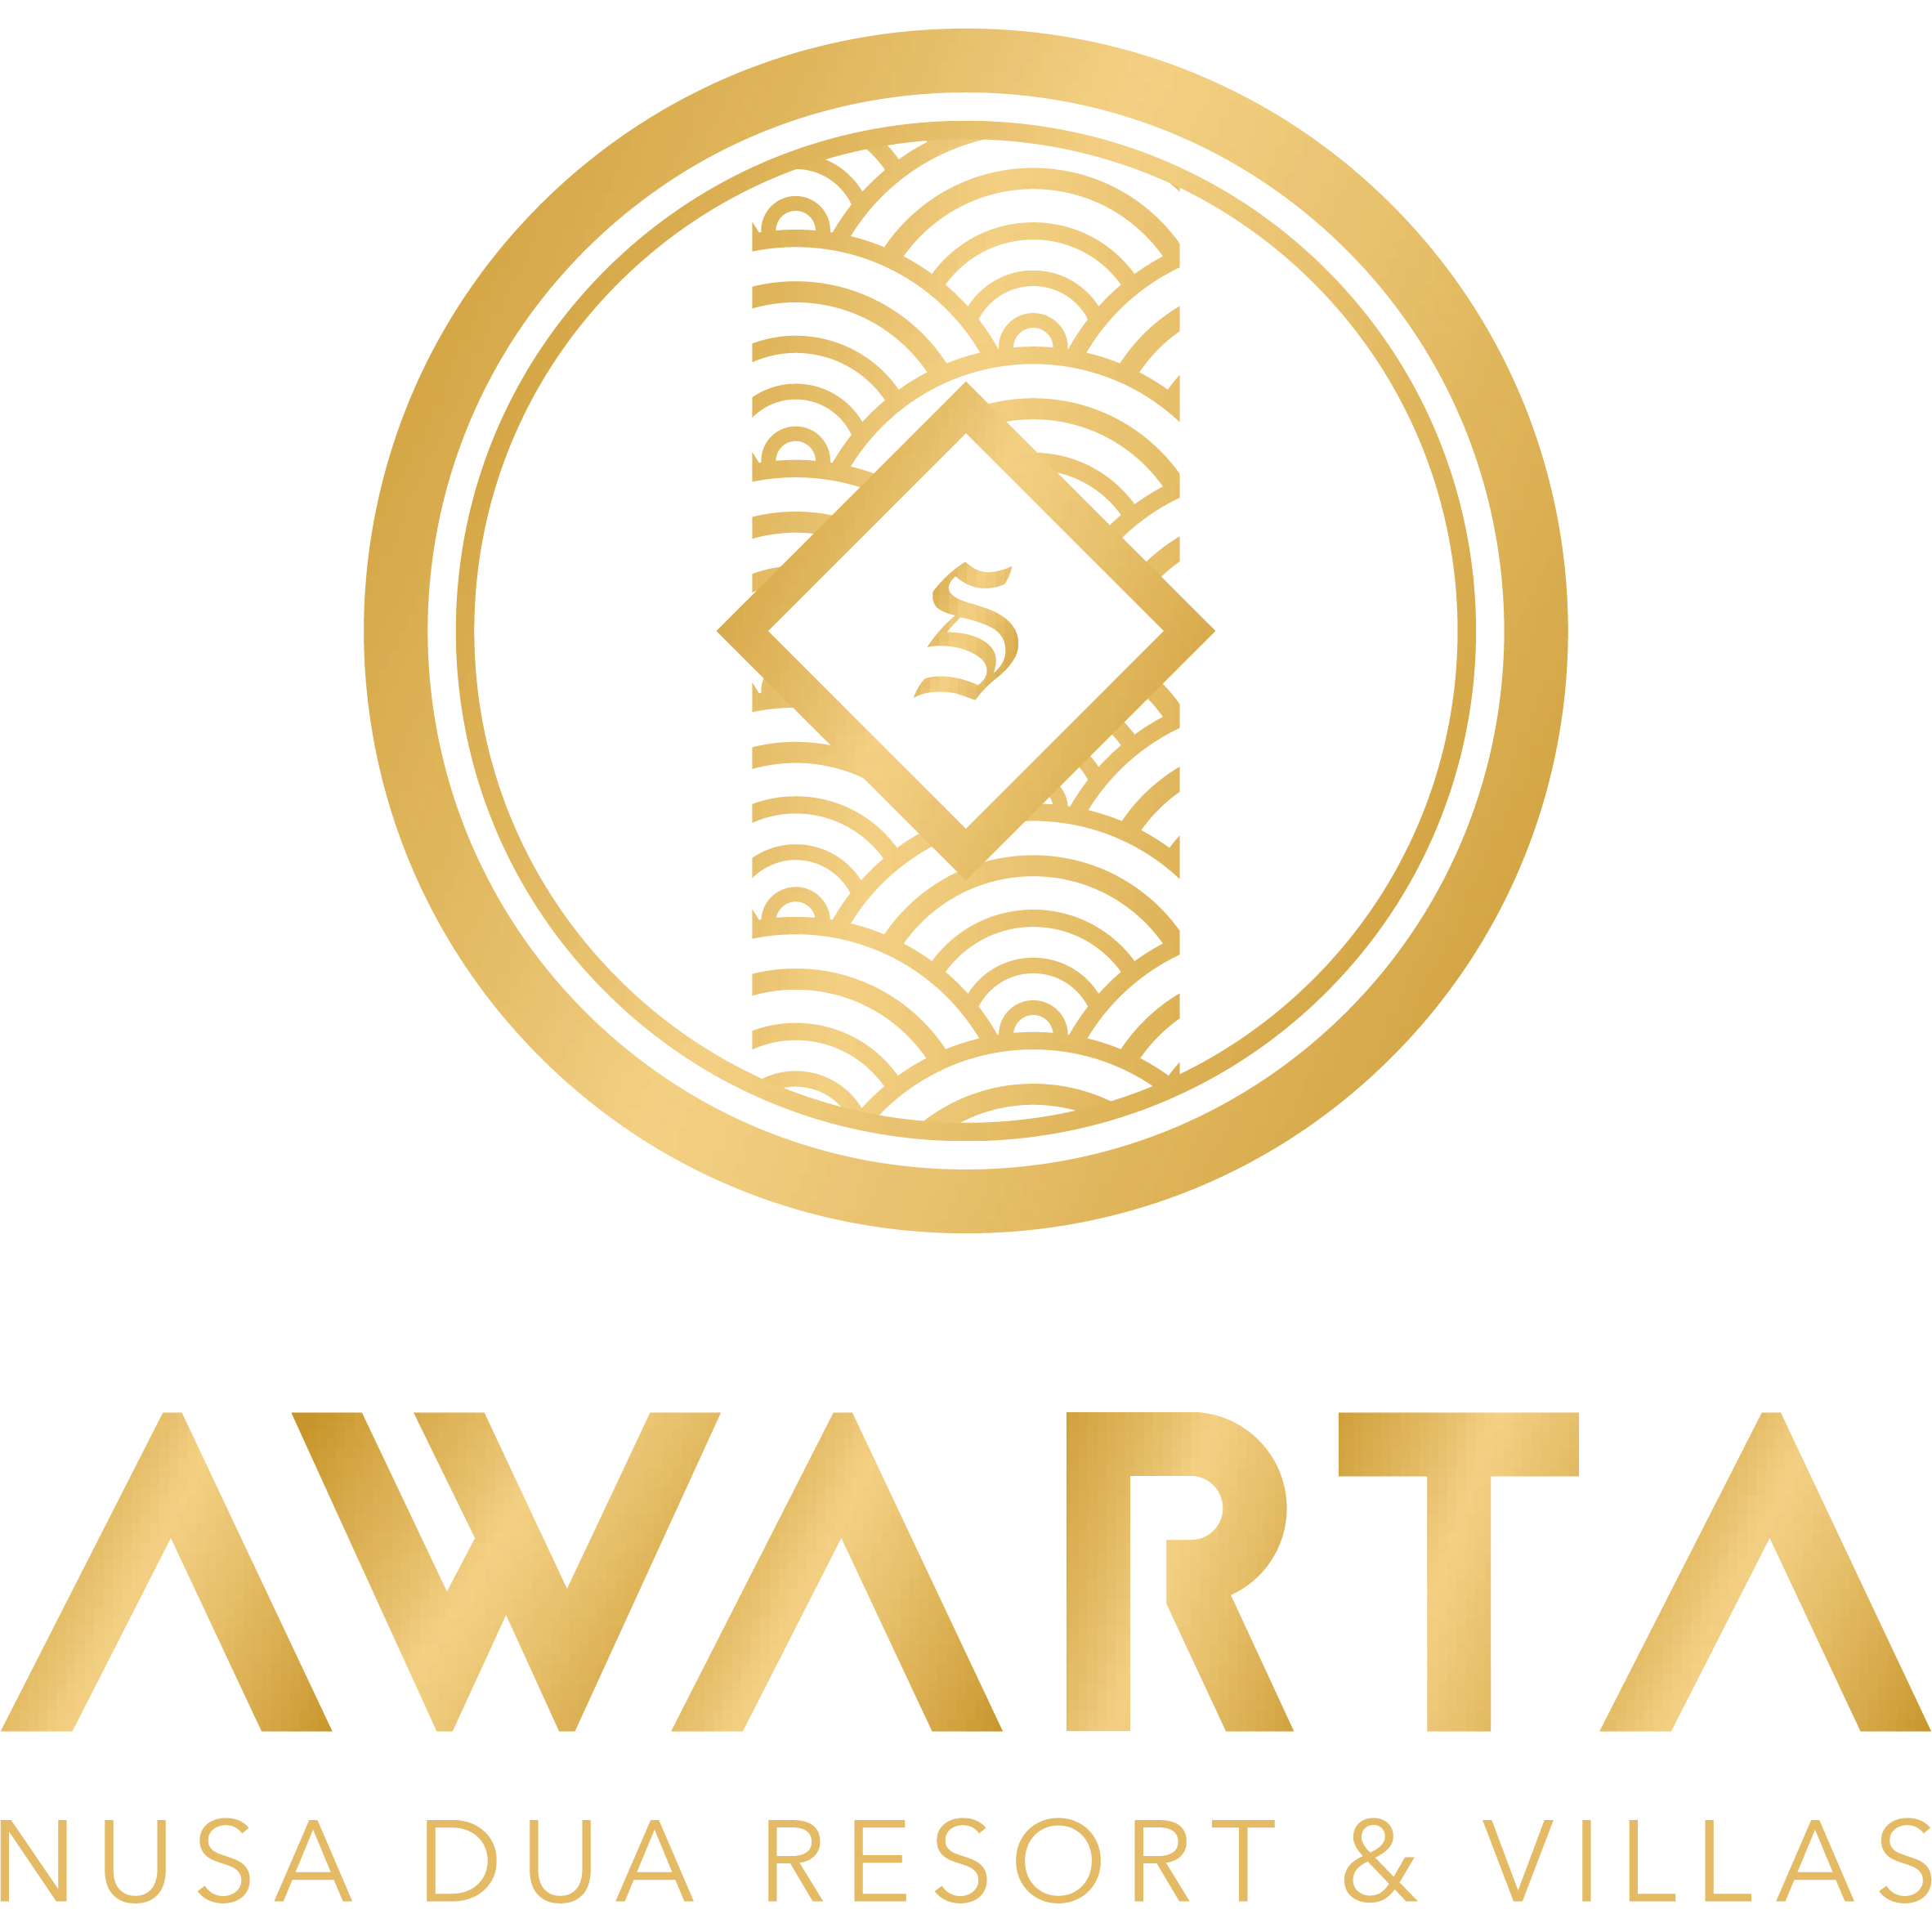 Awarta Nusa Dua Resort and Villas